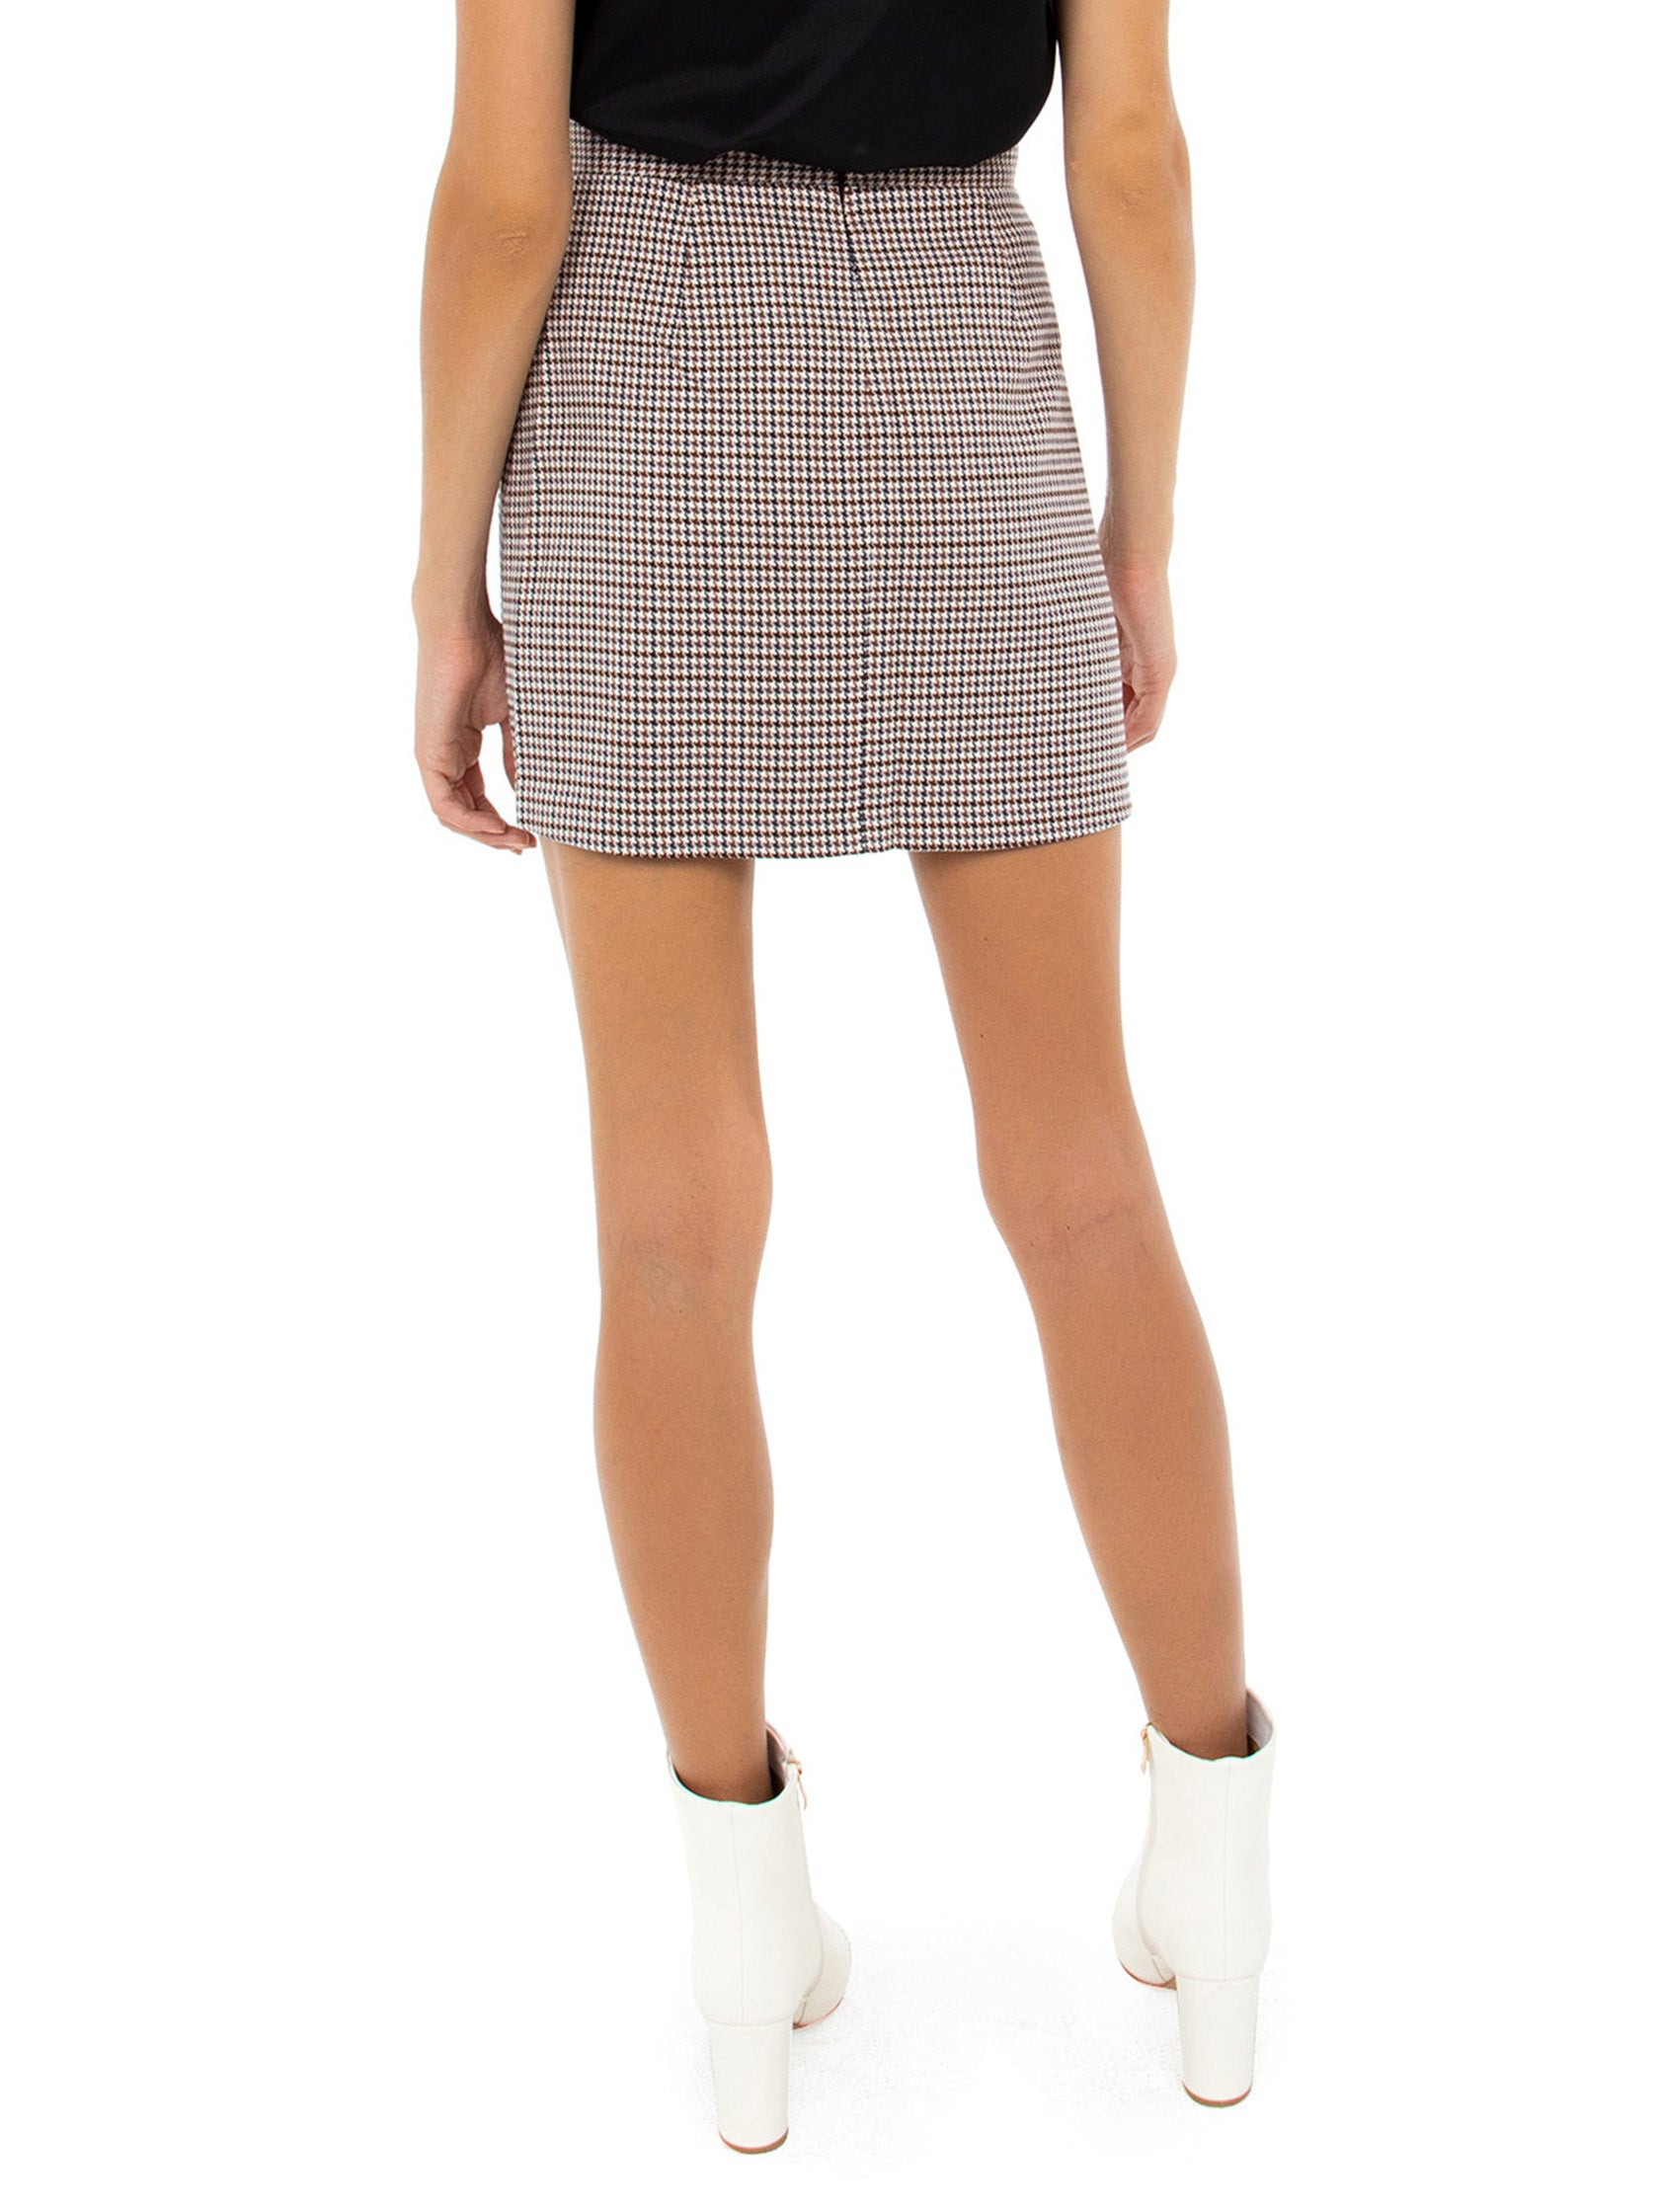 Women outfit in a skirt rental from BB Dakota called Check It Out Skirt